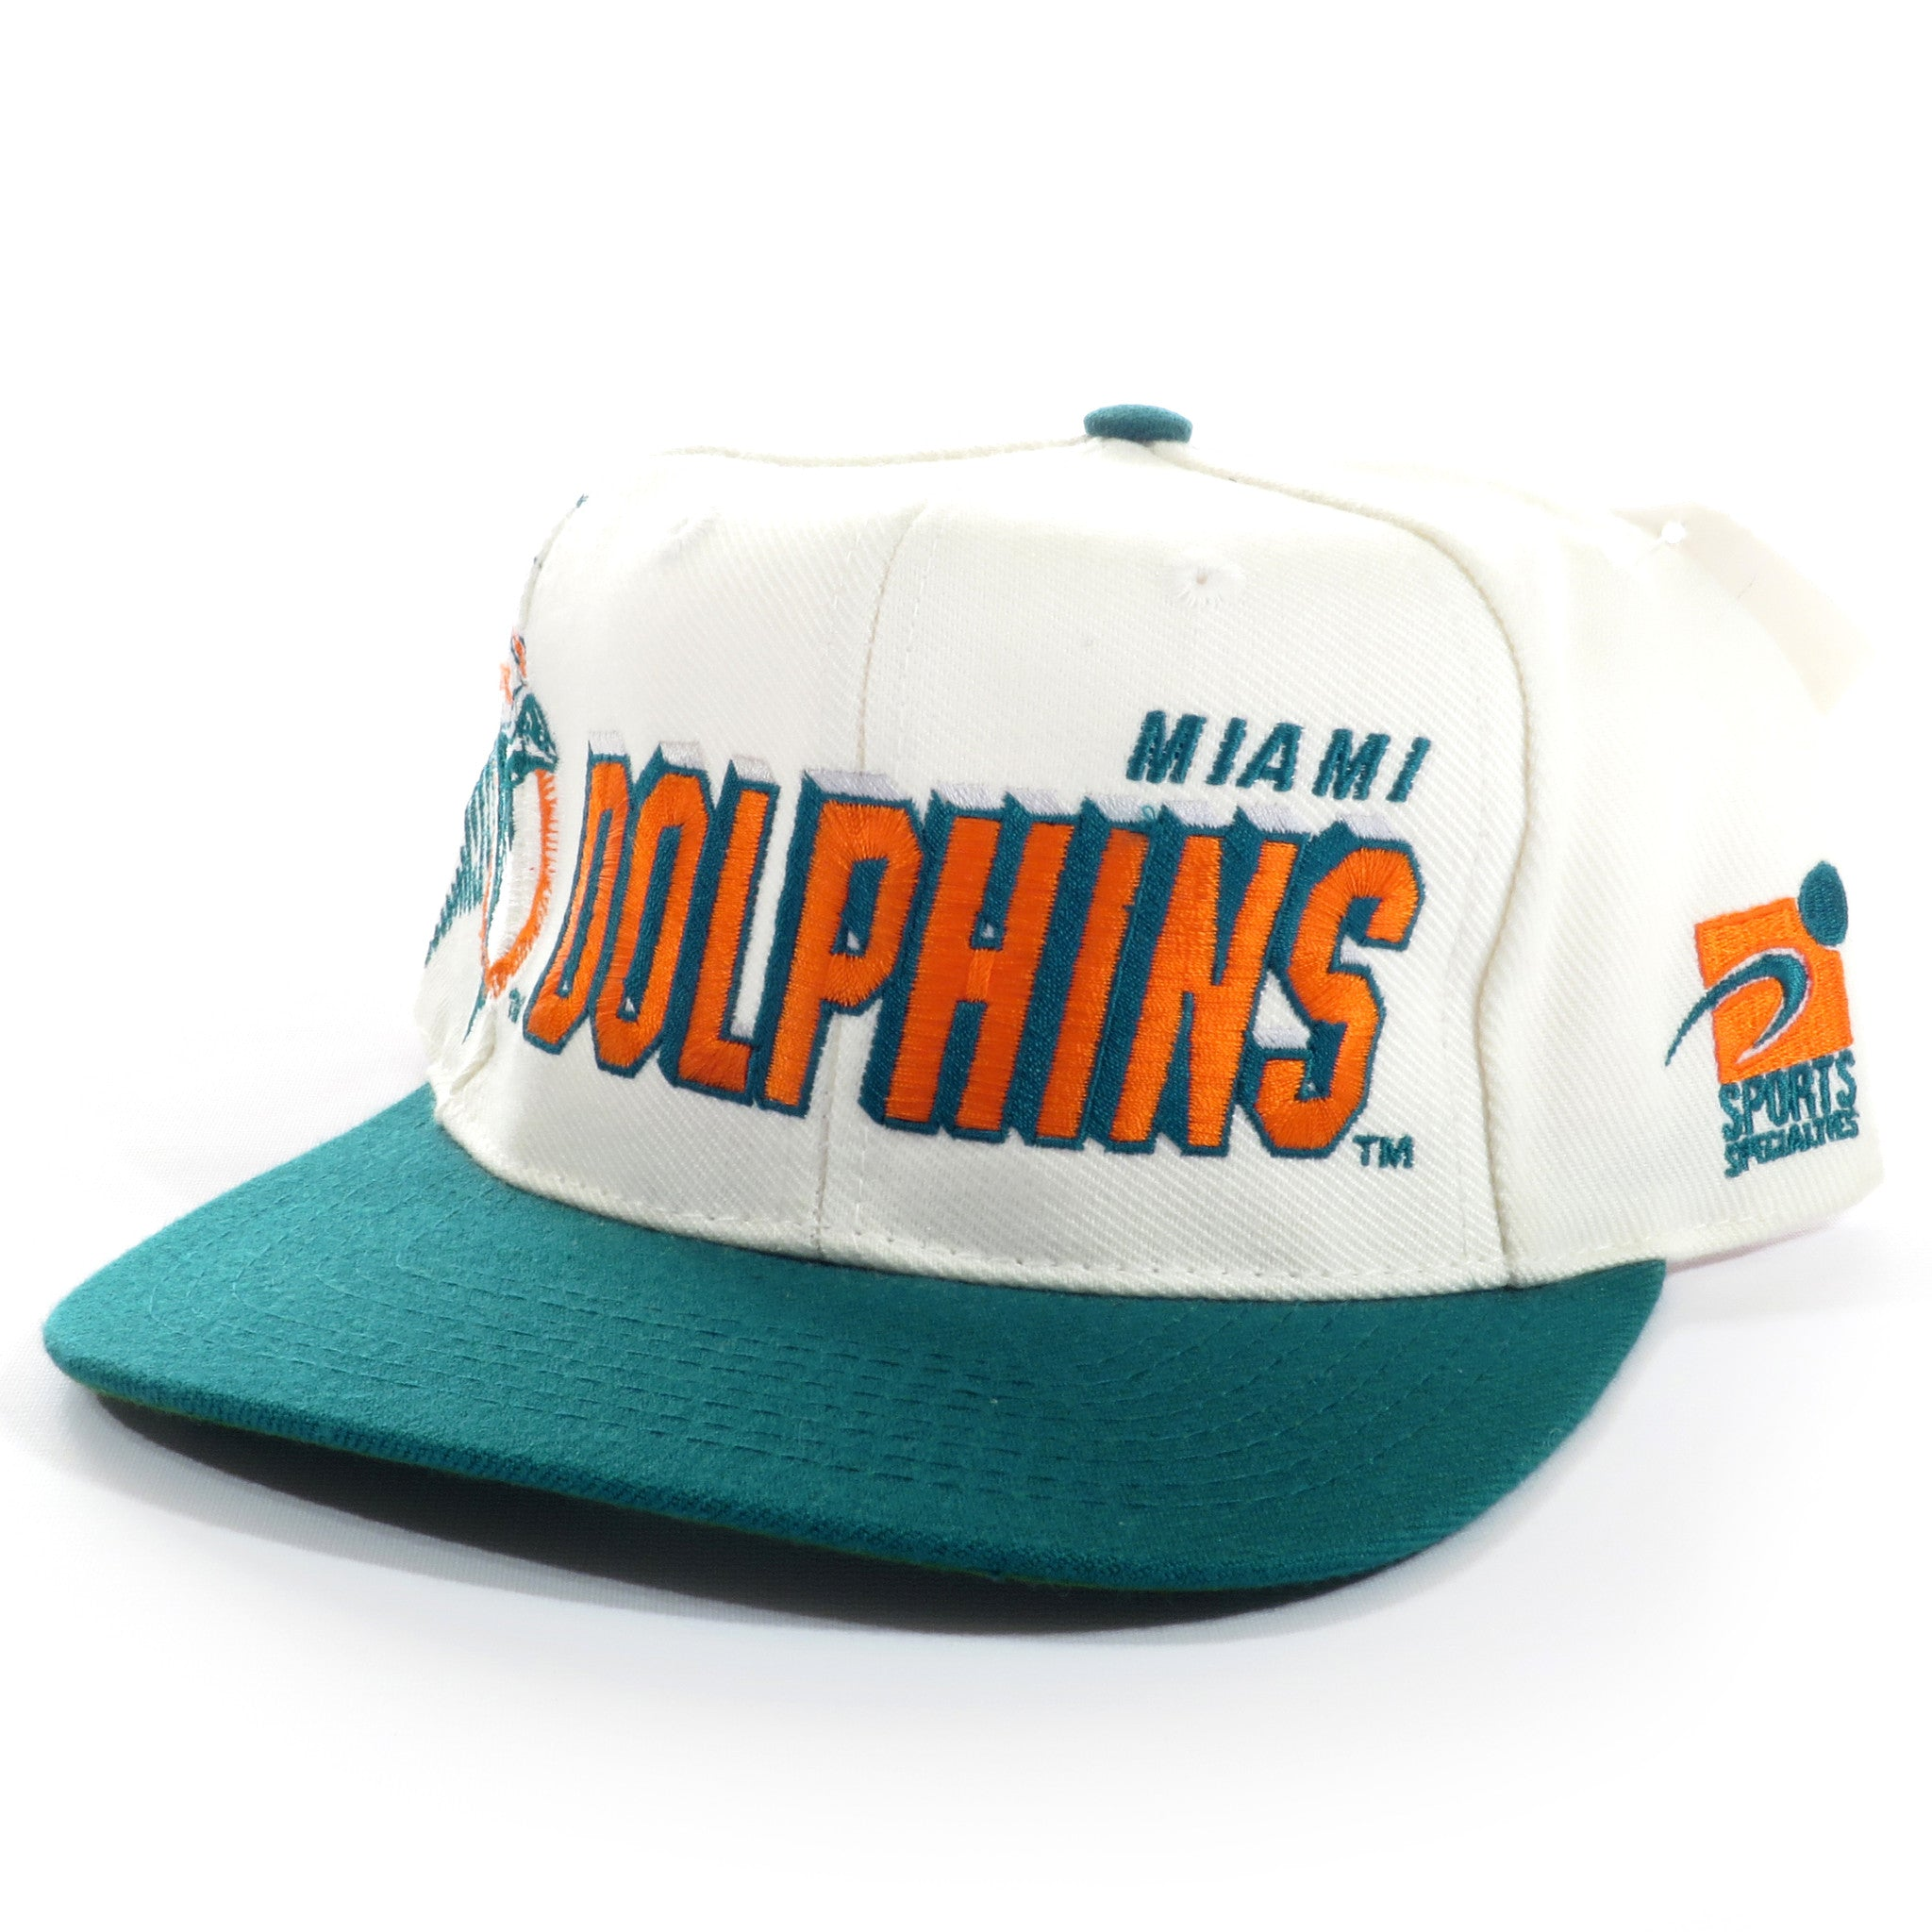 Miami Dolphins Shadow Snapback Hat